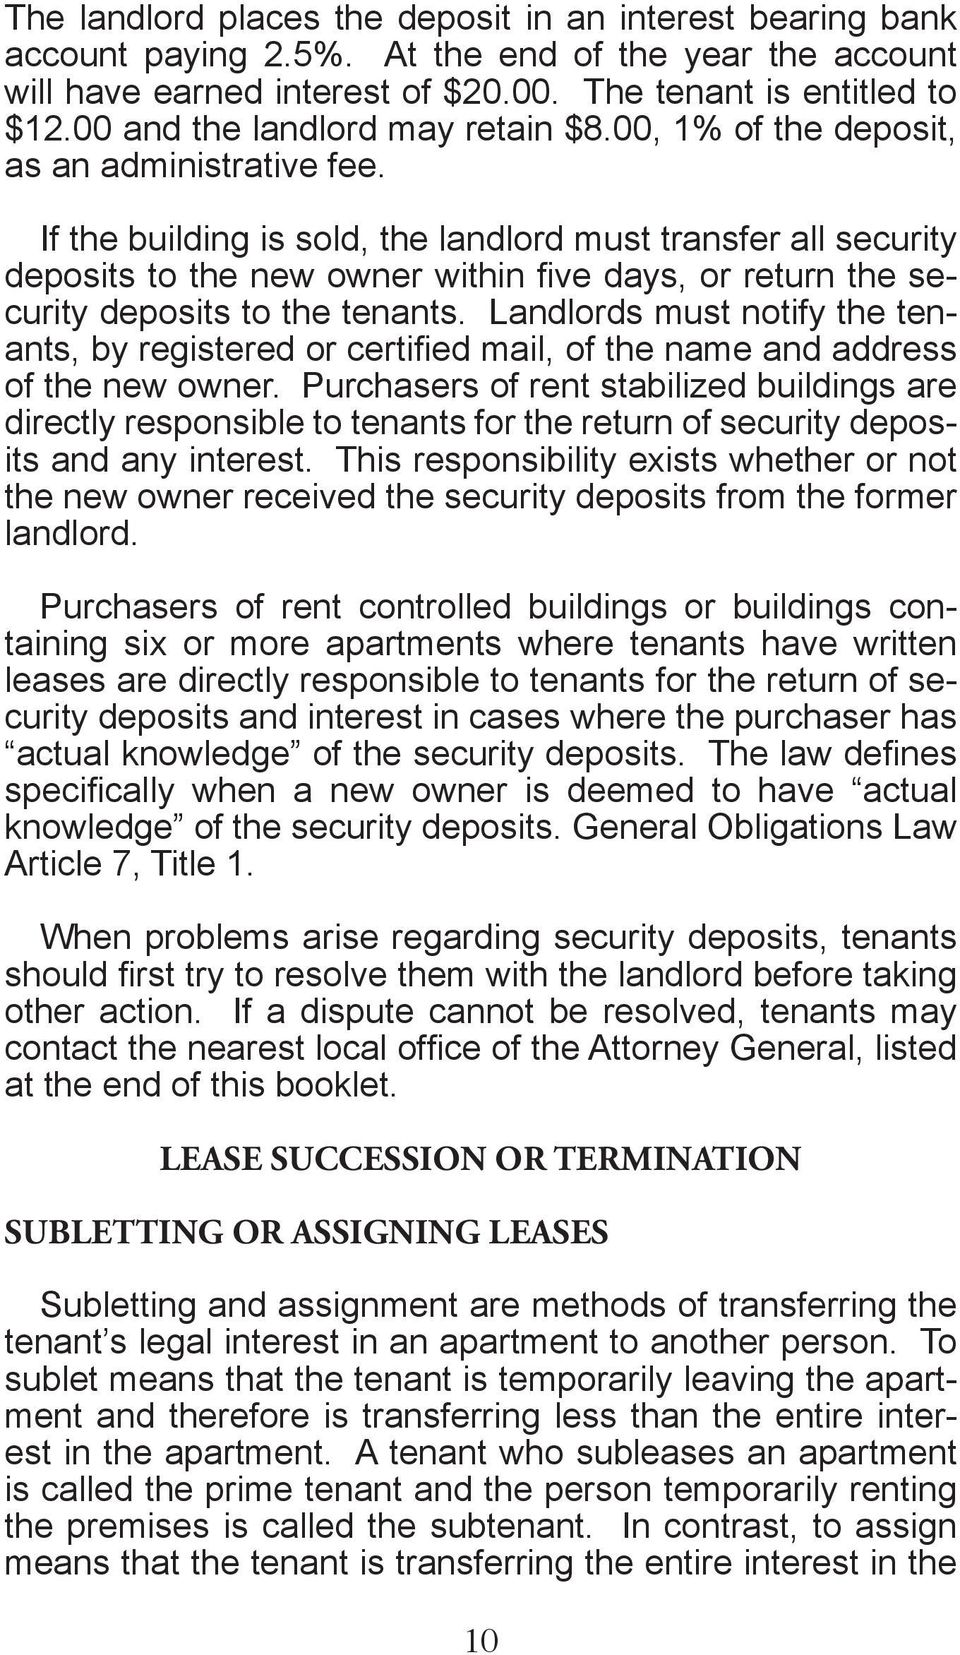 If the building is sold, the landlord must transfer all security deposits to the new owner within five days, or return the security deposits to the tenants.